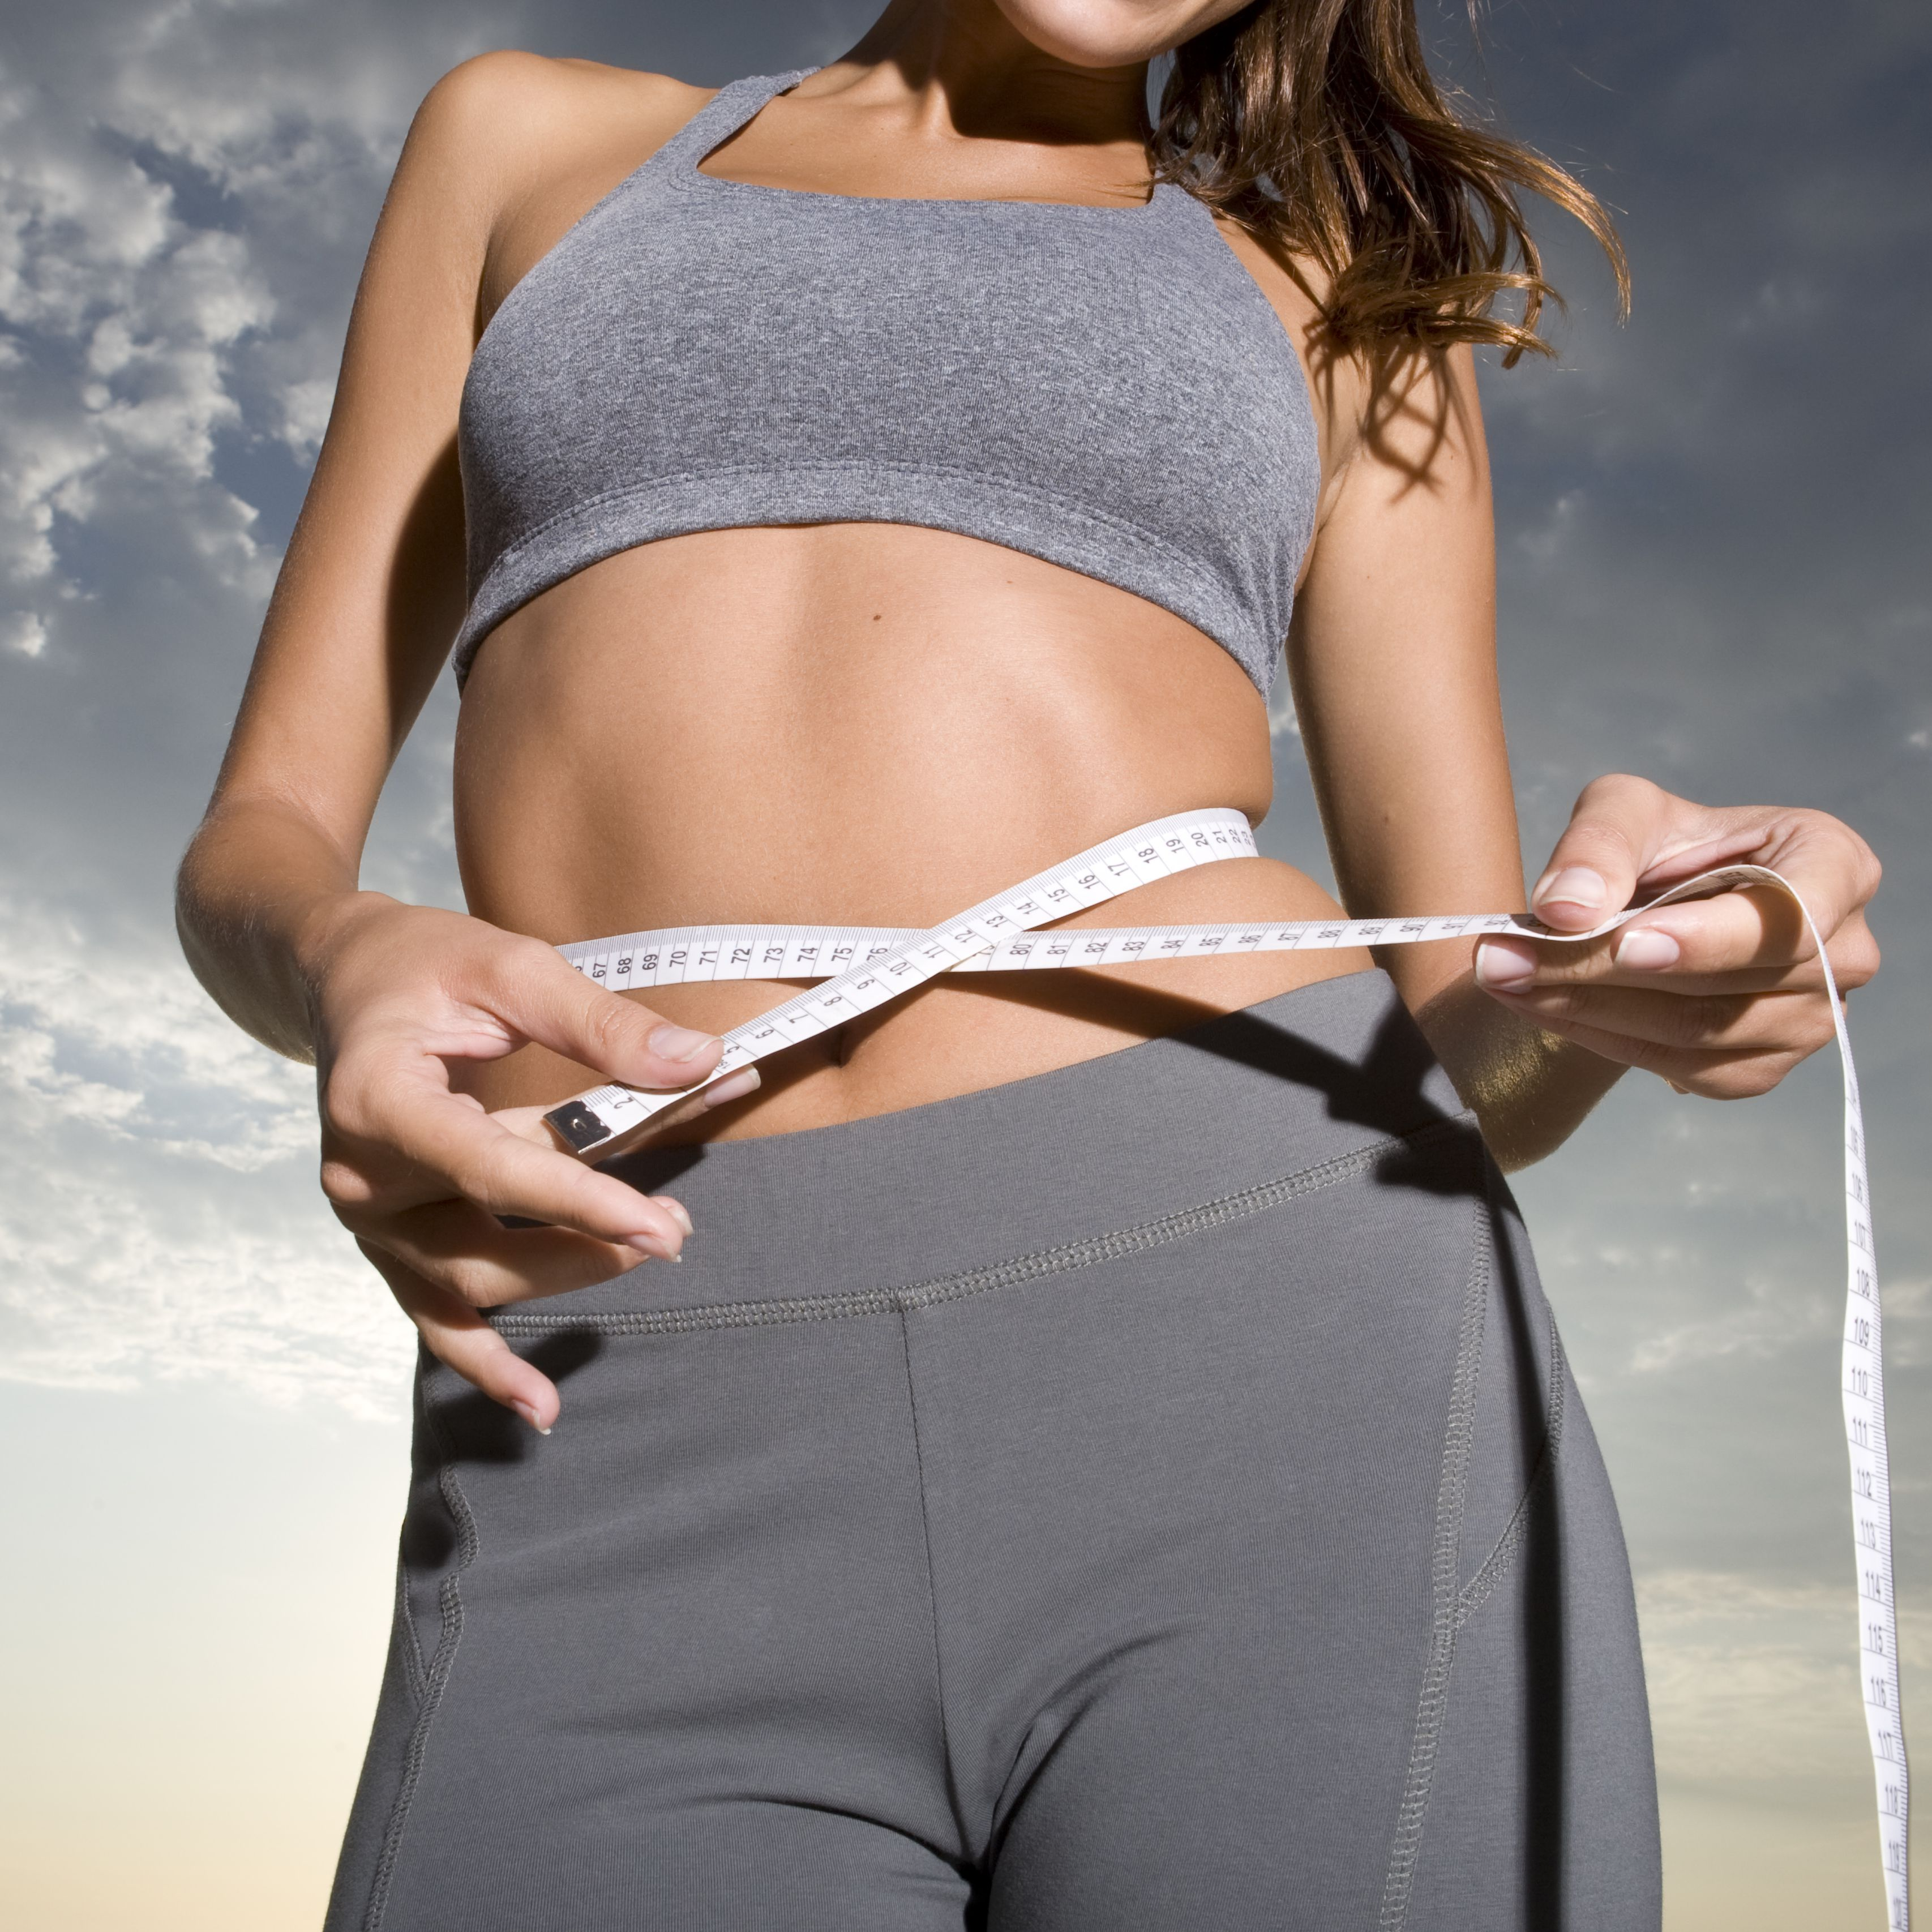 Saxenda: An Injectable Weight Loss Drug